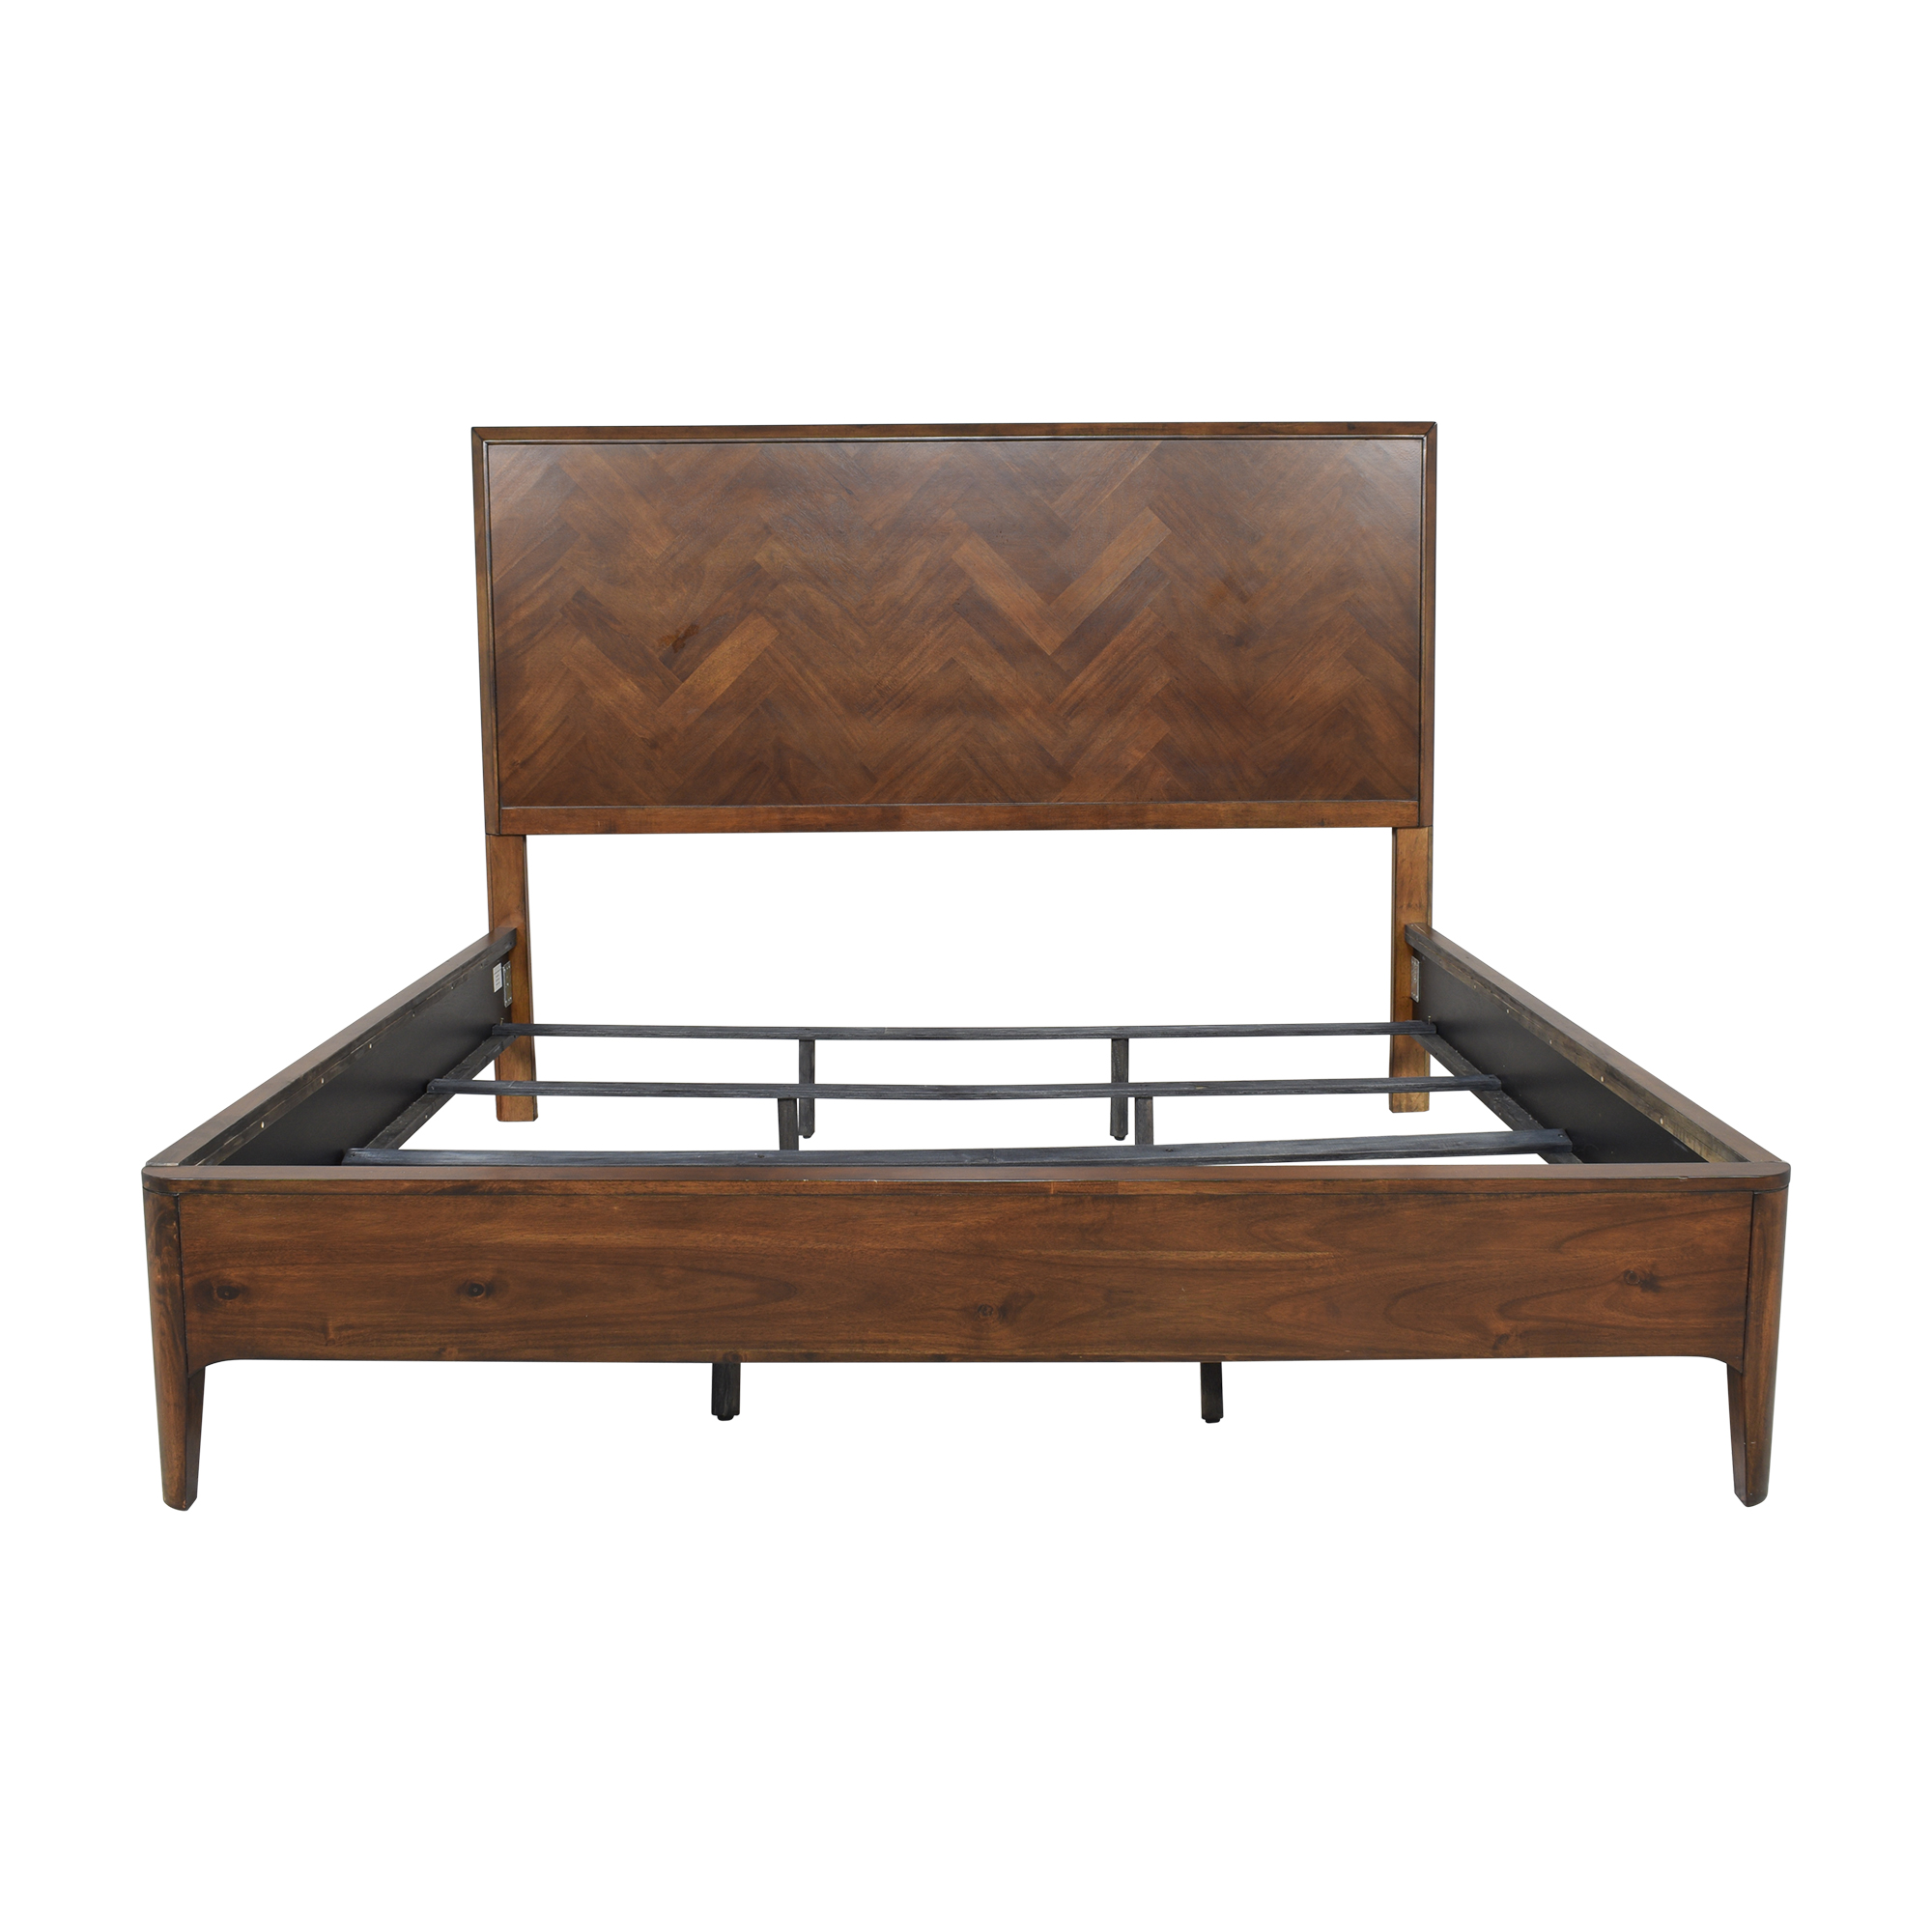 Raymour & Flanigan Raymour & Flanigan King Platform Bed  dimensions